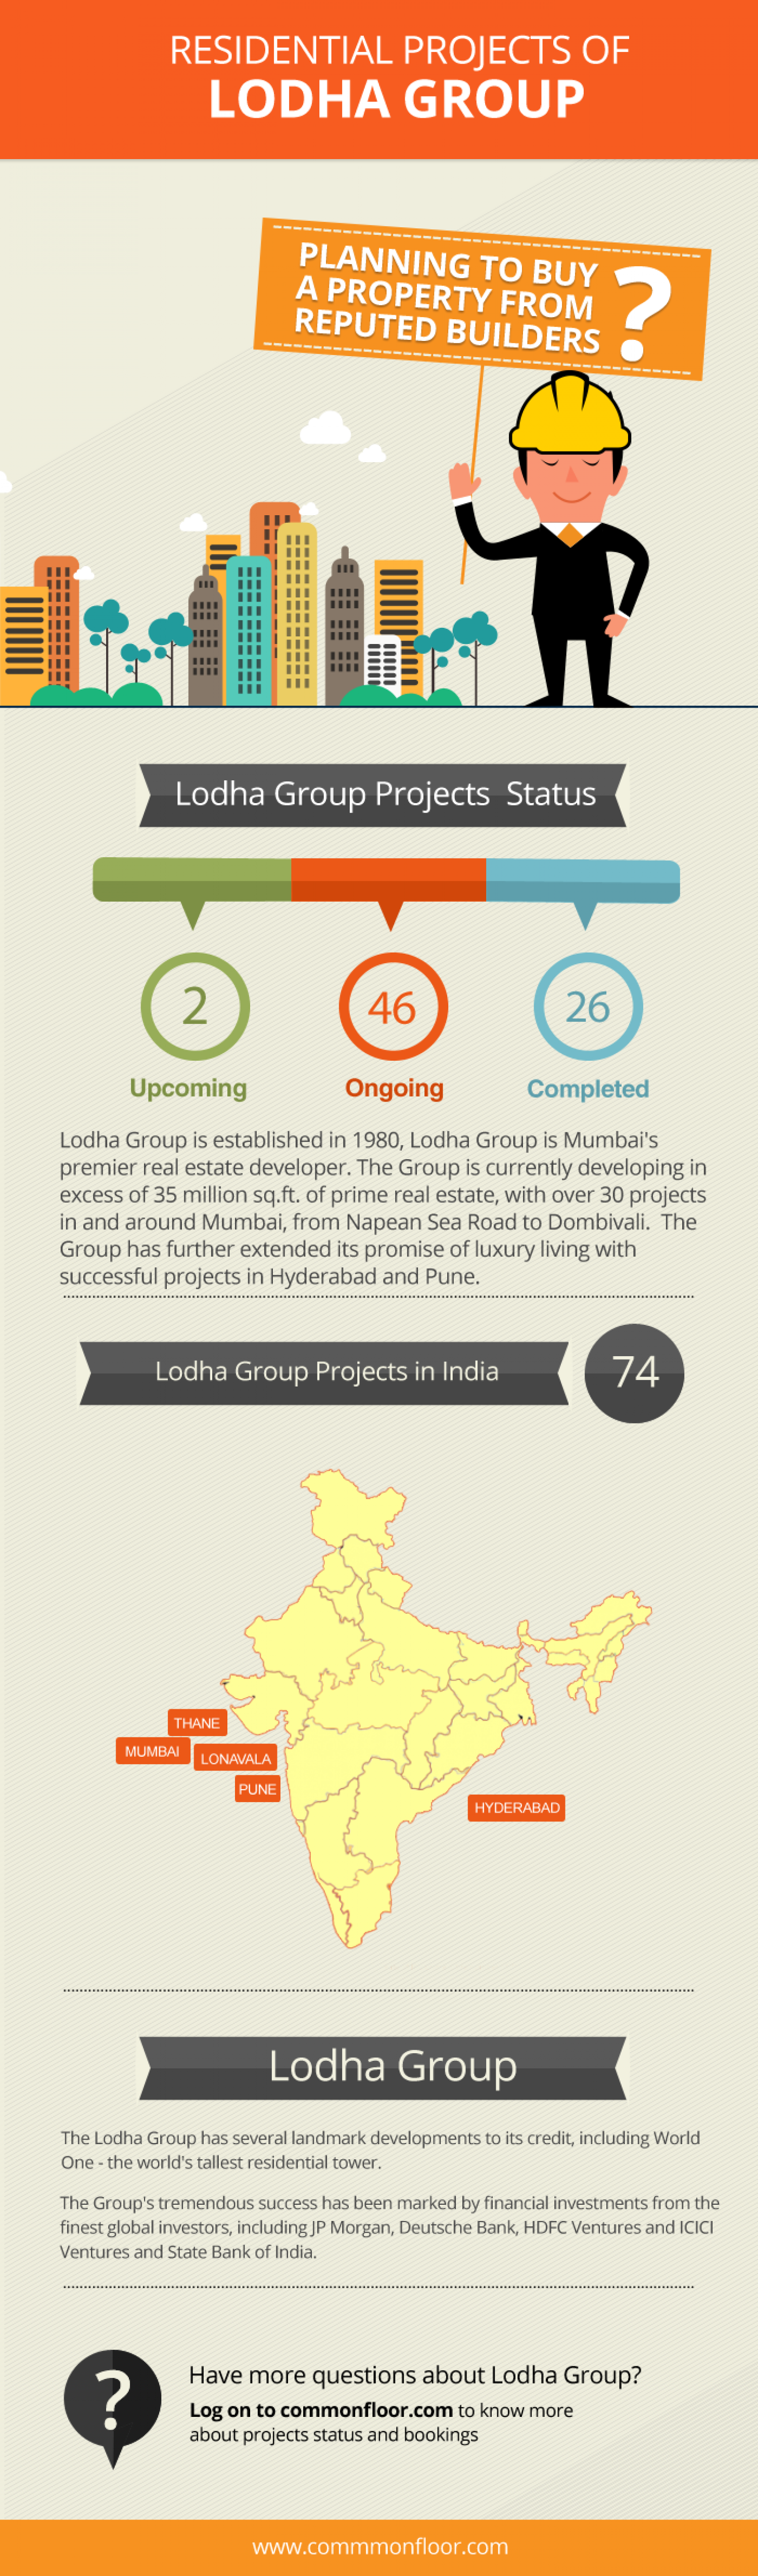 Residential Projects of Lodha builder Across India Infographic